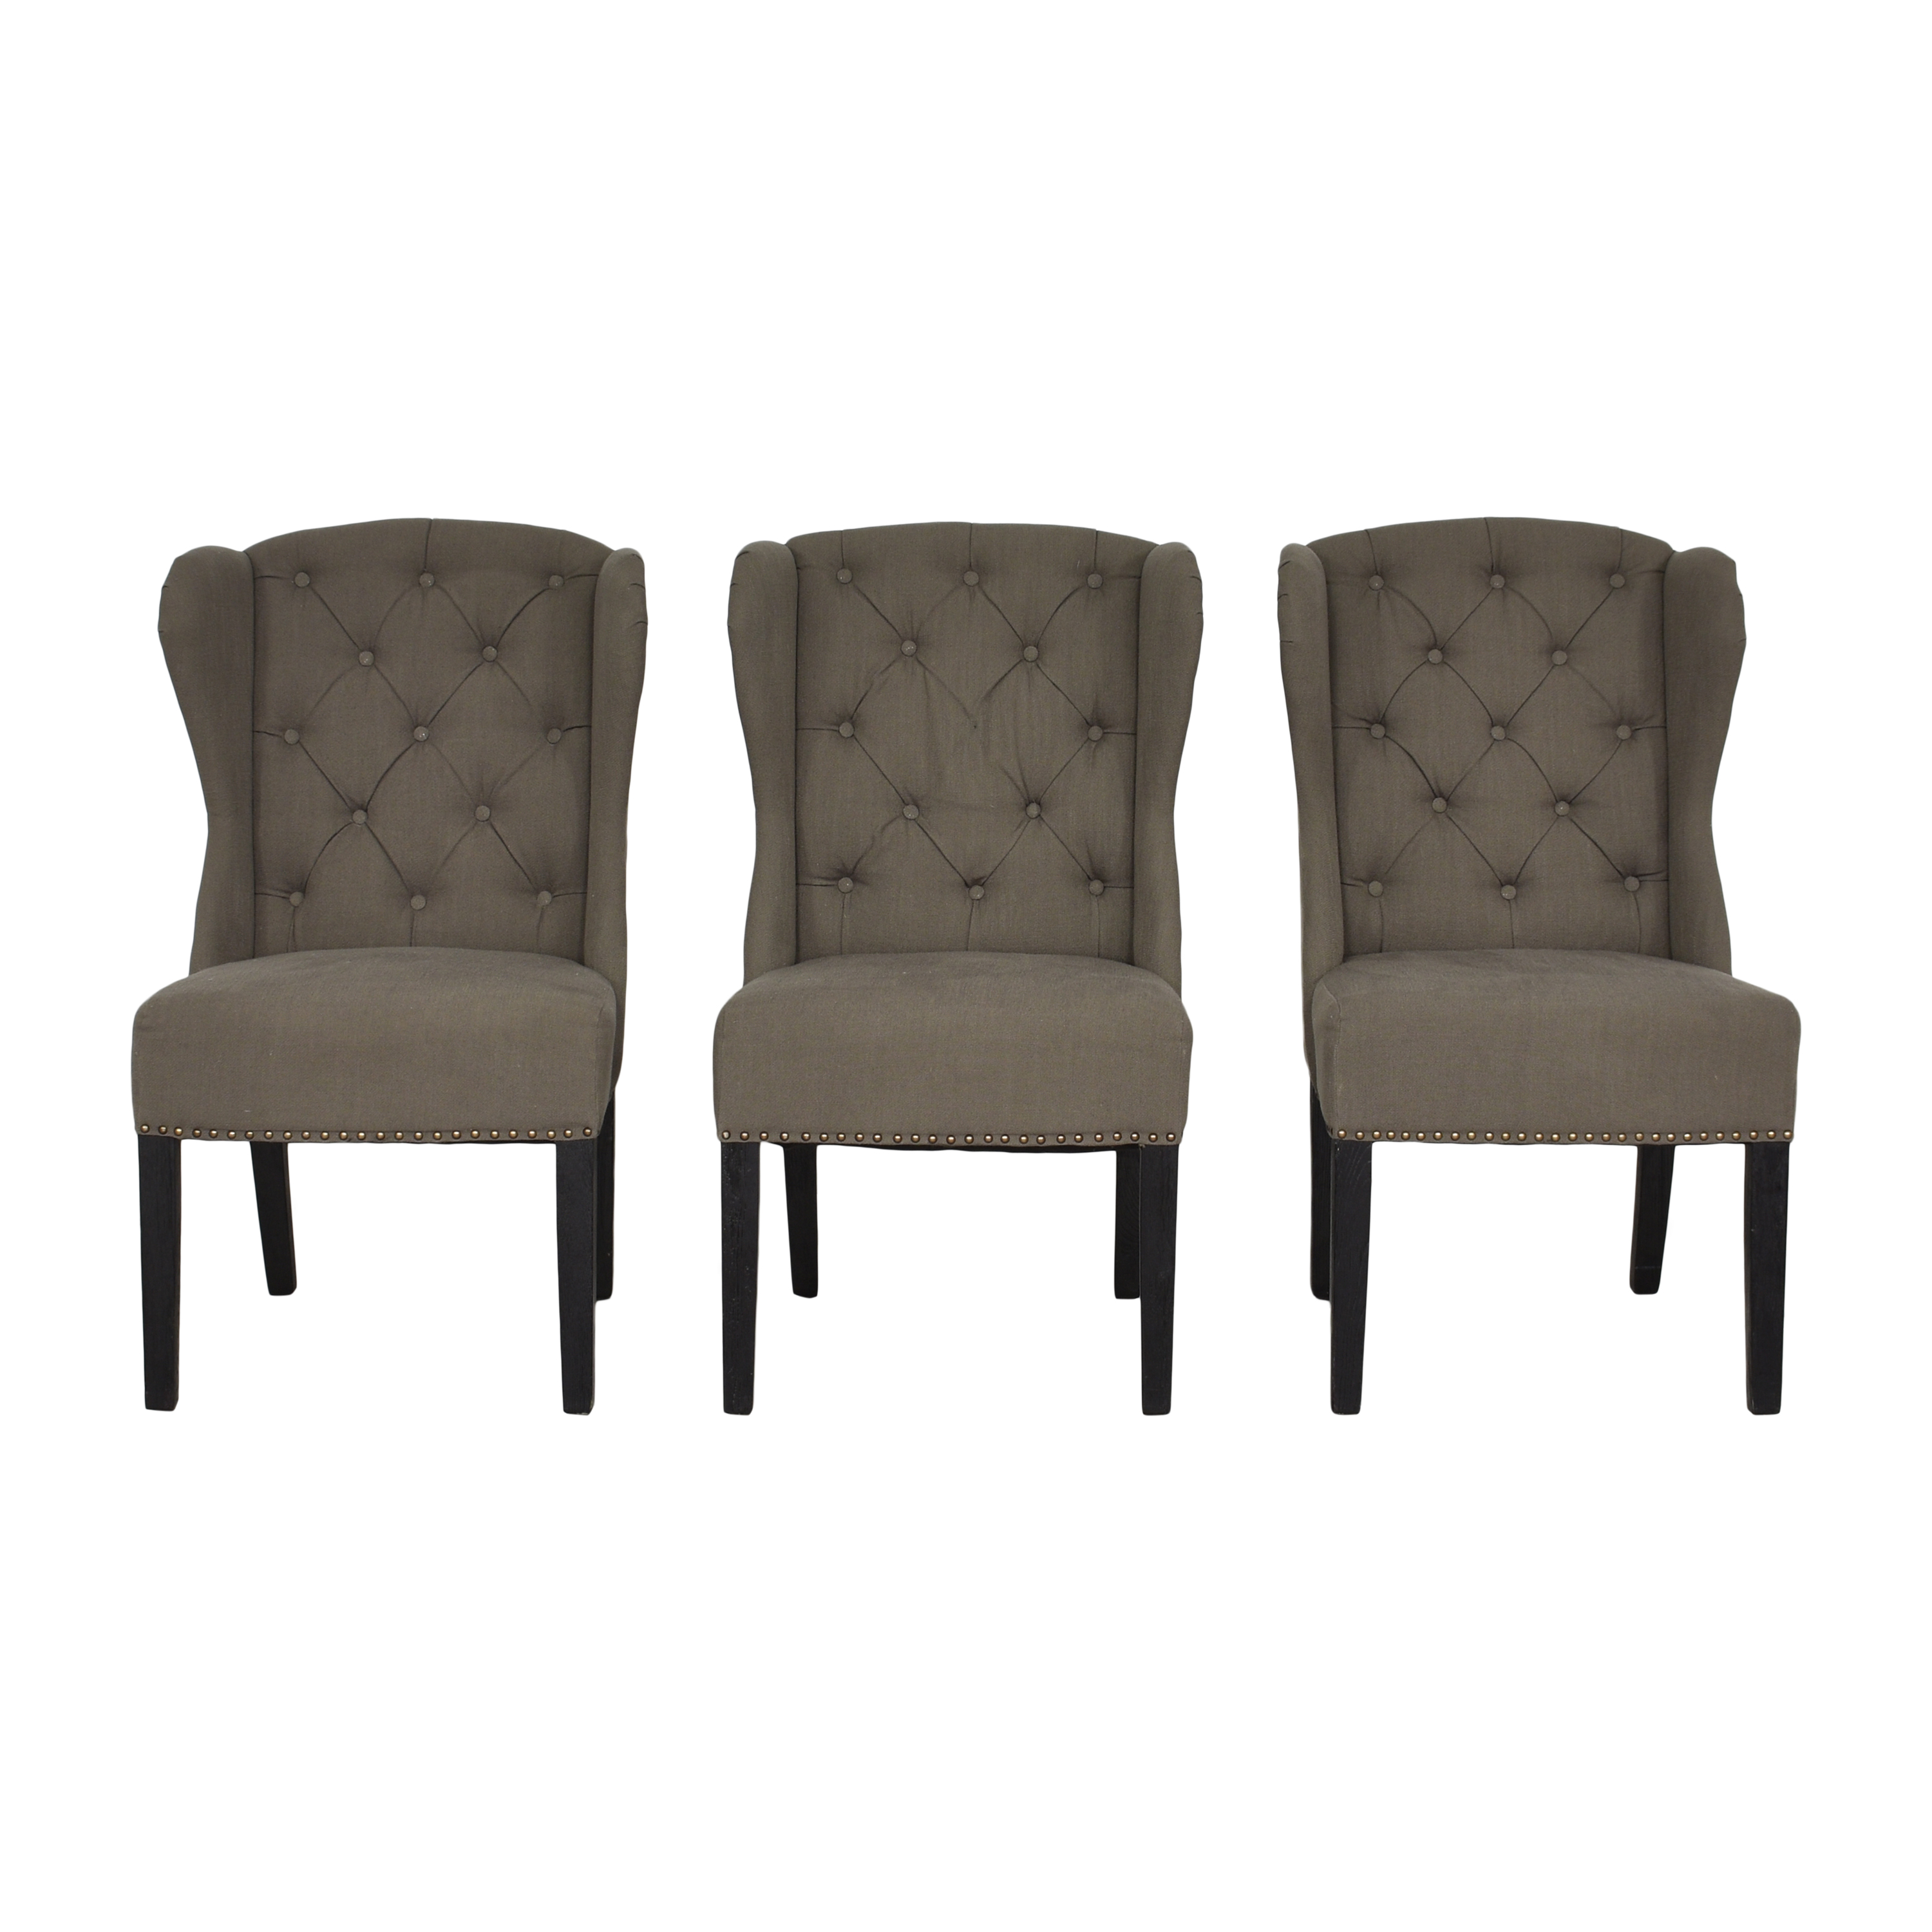 Arhaus Greyson Tufted Upholstered Dining Side Chairs sale